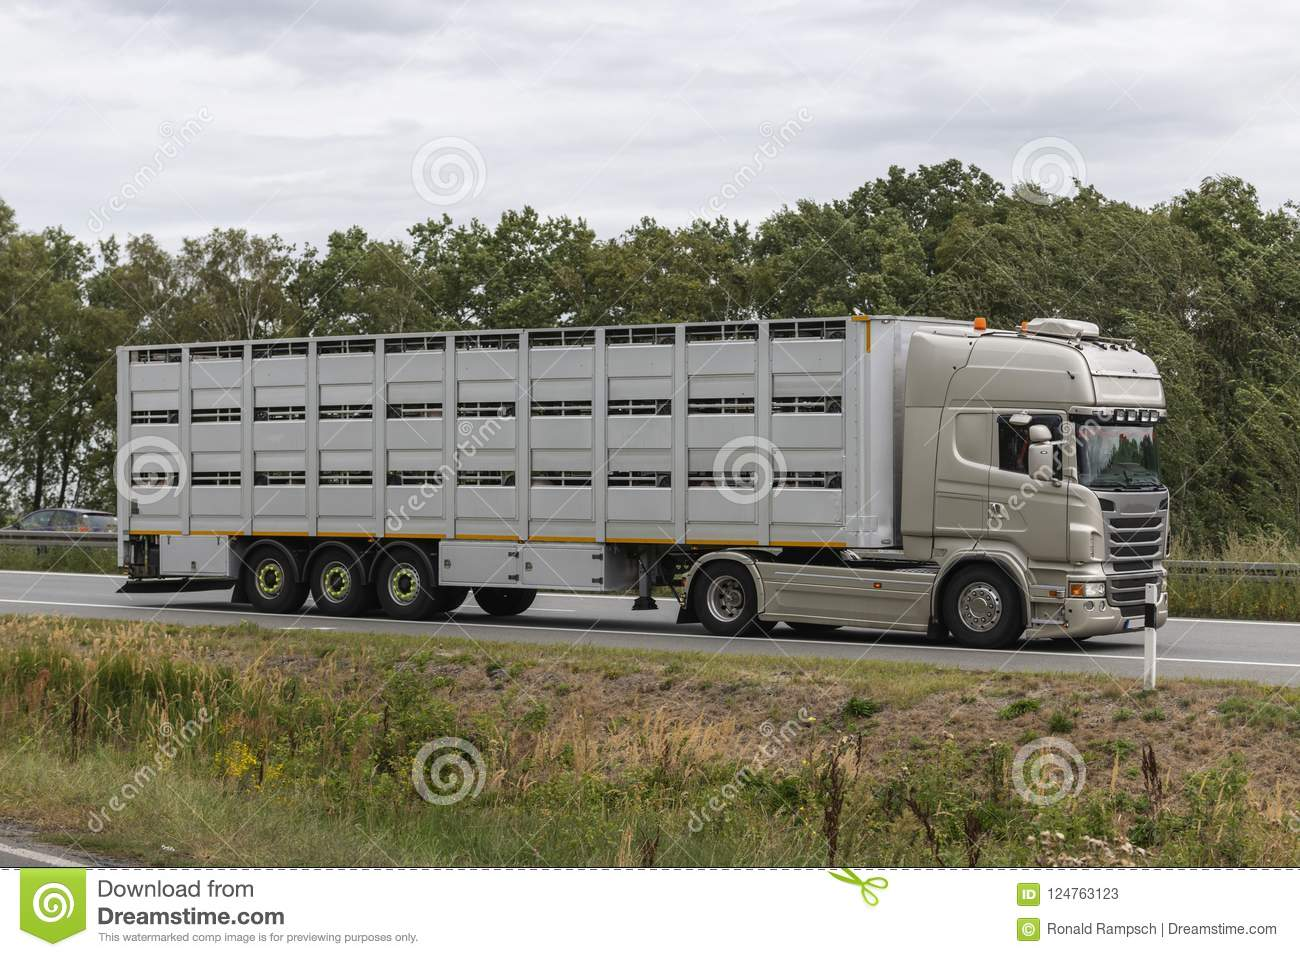 Modern livestock transporter on its way to the slaughterhouse